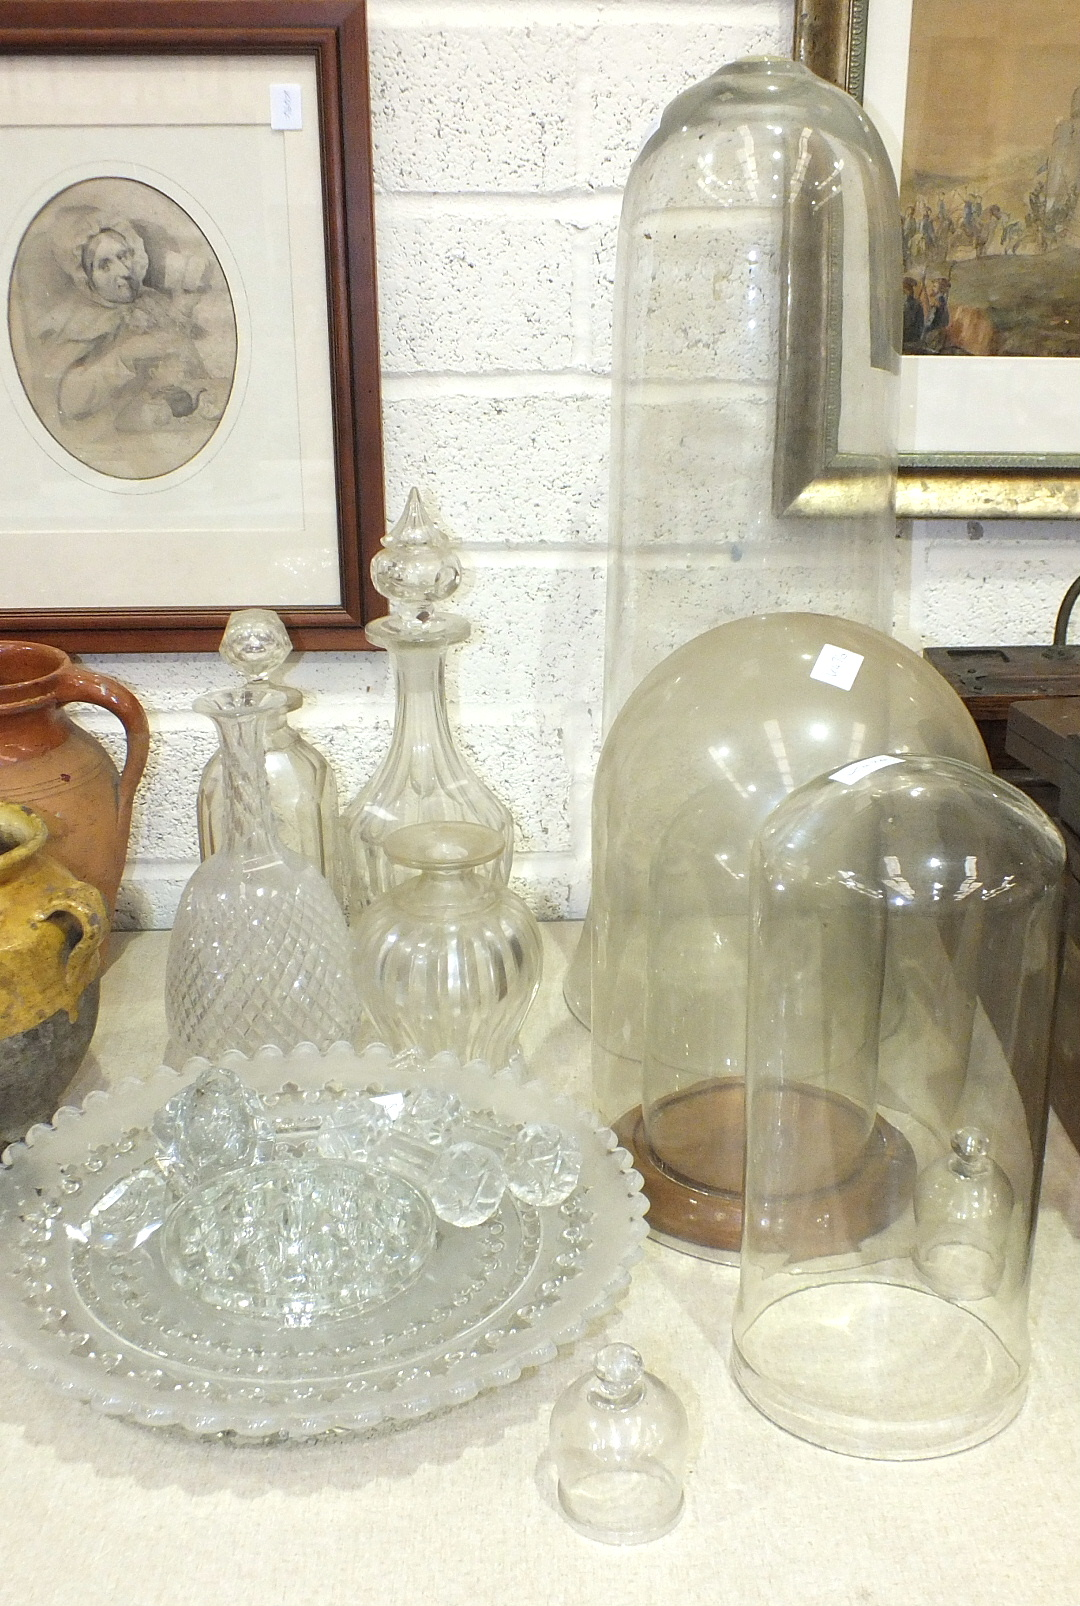 Lot 39 - Three glass domes, three cut-glass decanters and other glassware.